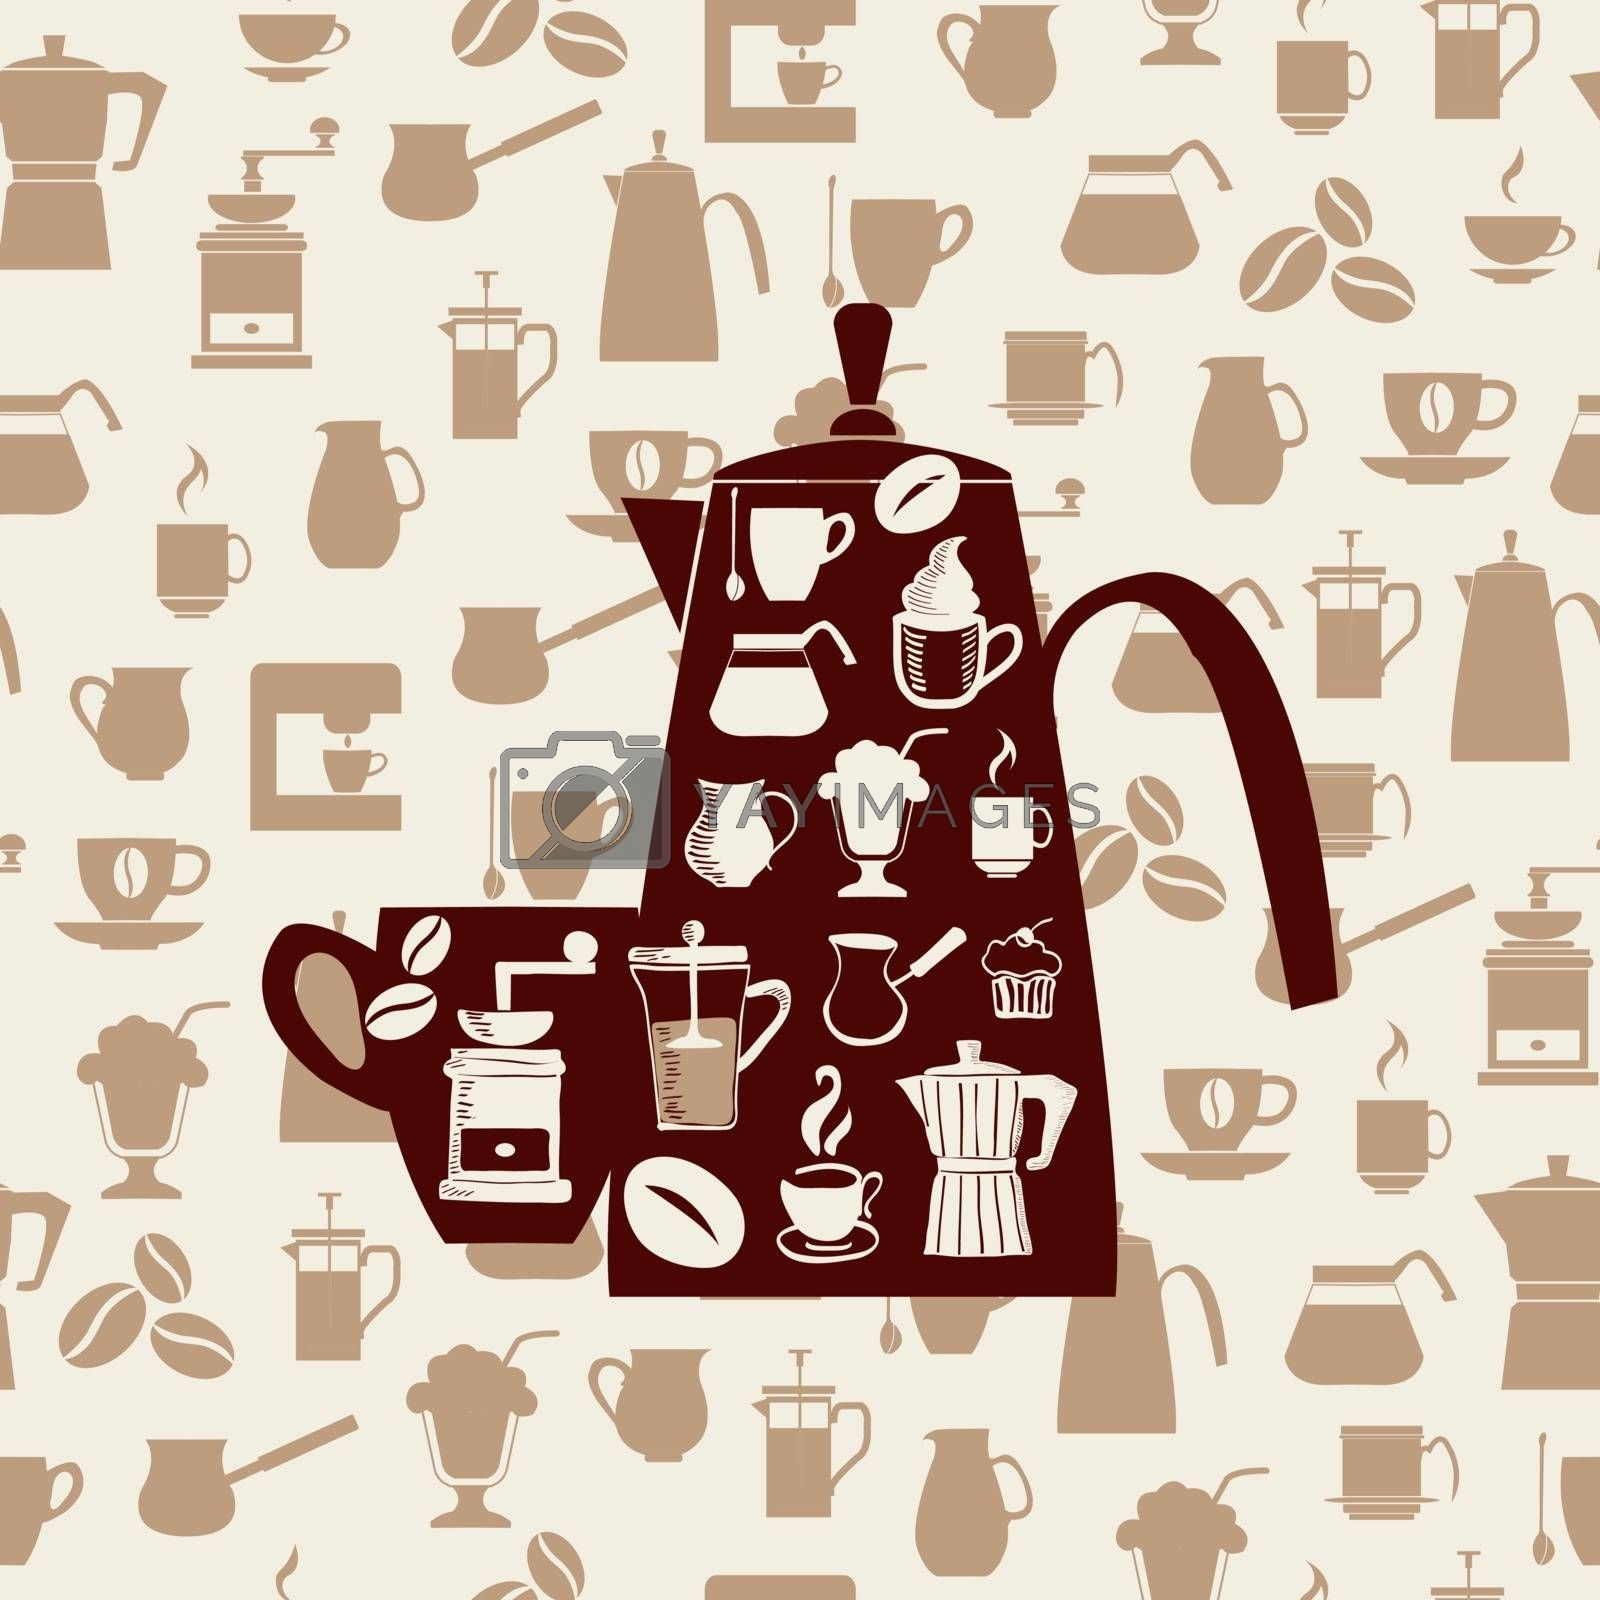 Vector background with Coffee icons Set.Coffee icons silhouette -illustrtion